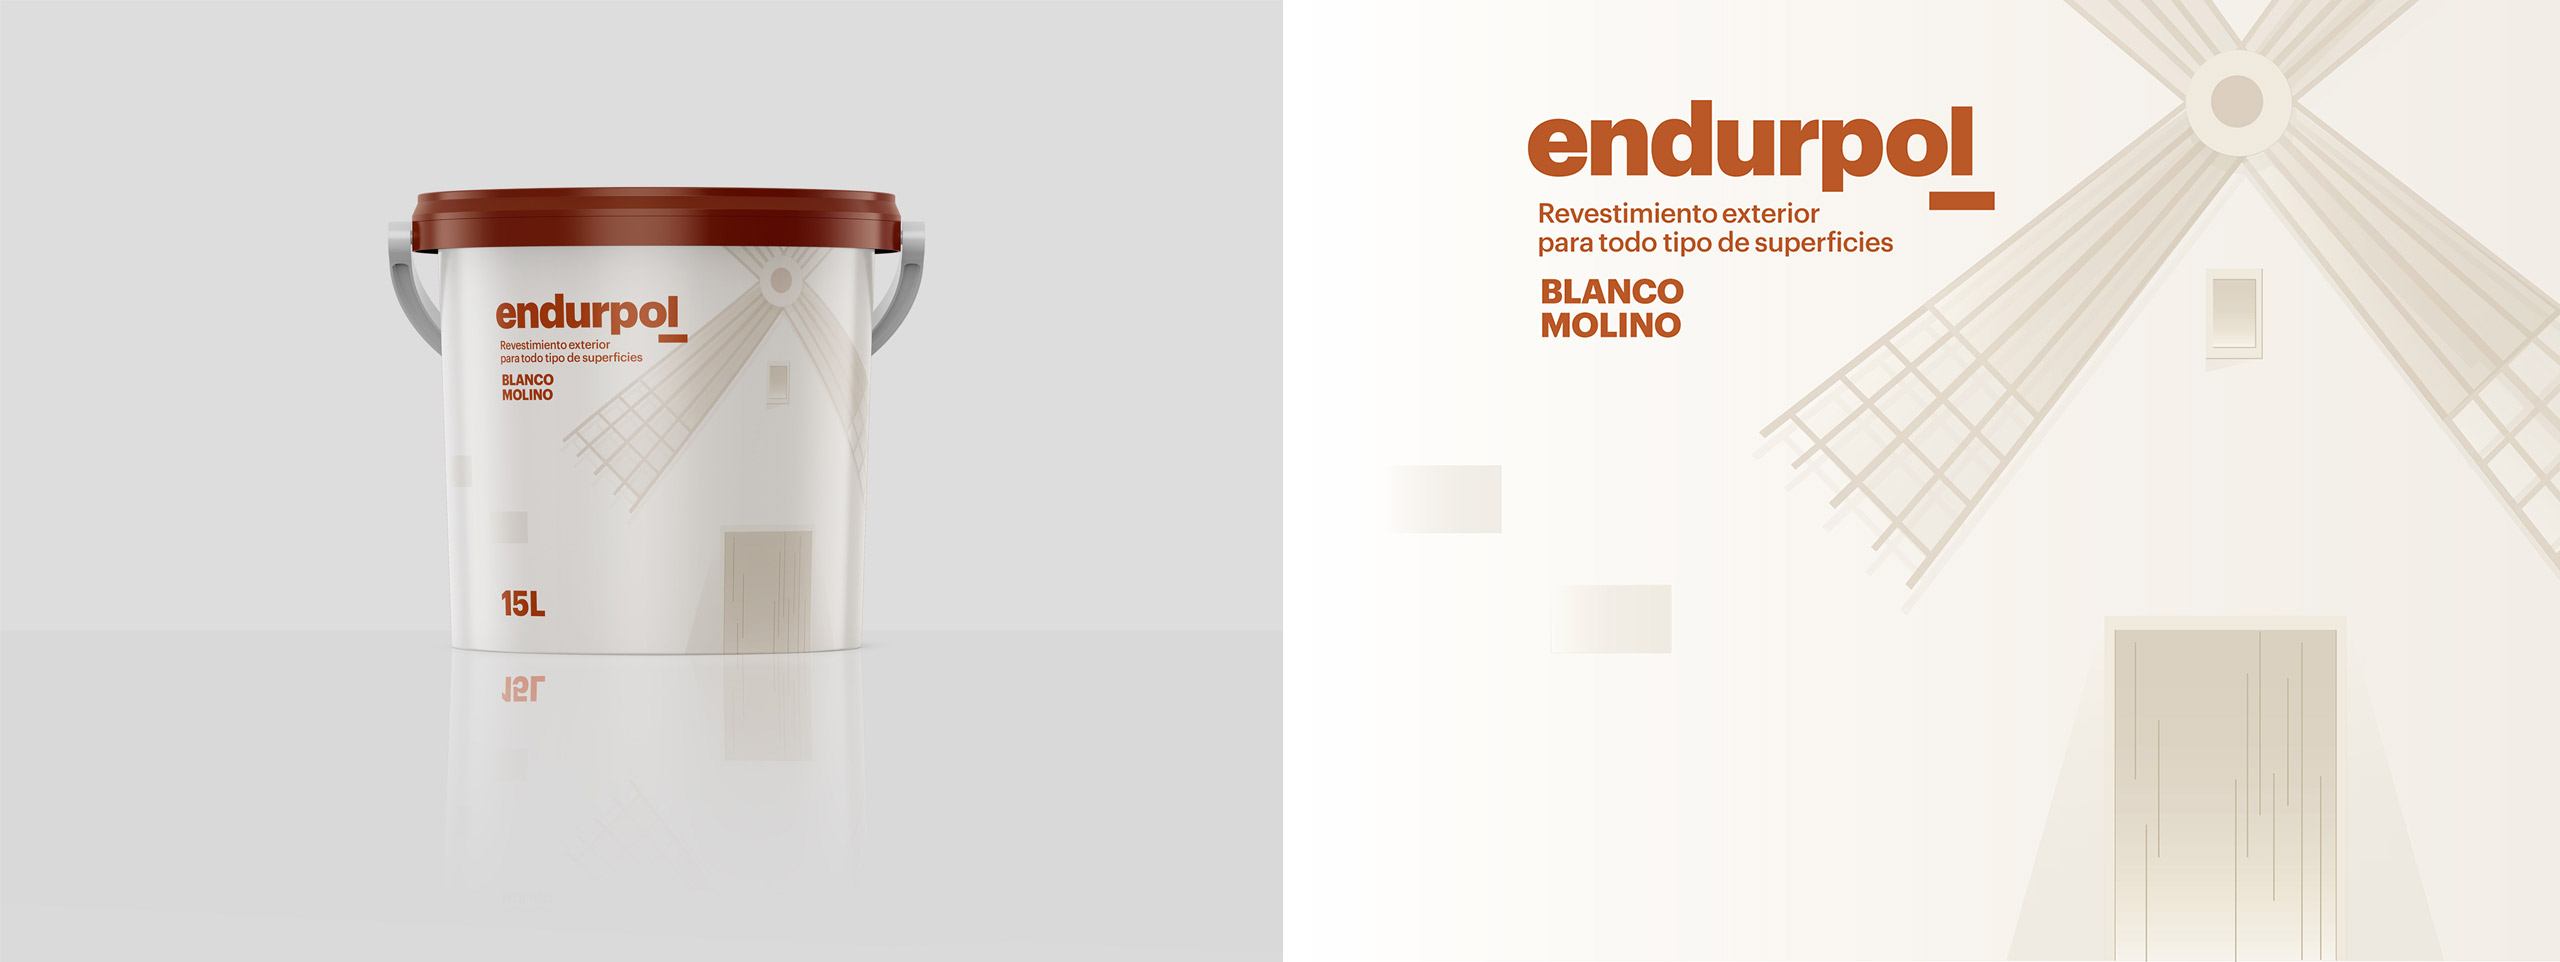 marinagoni-endurpol-packaging-pintura-molino